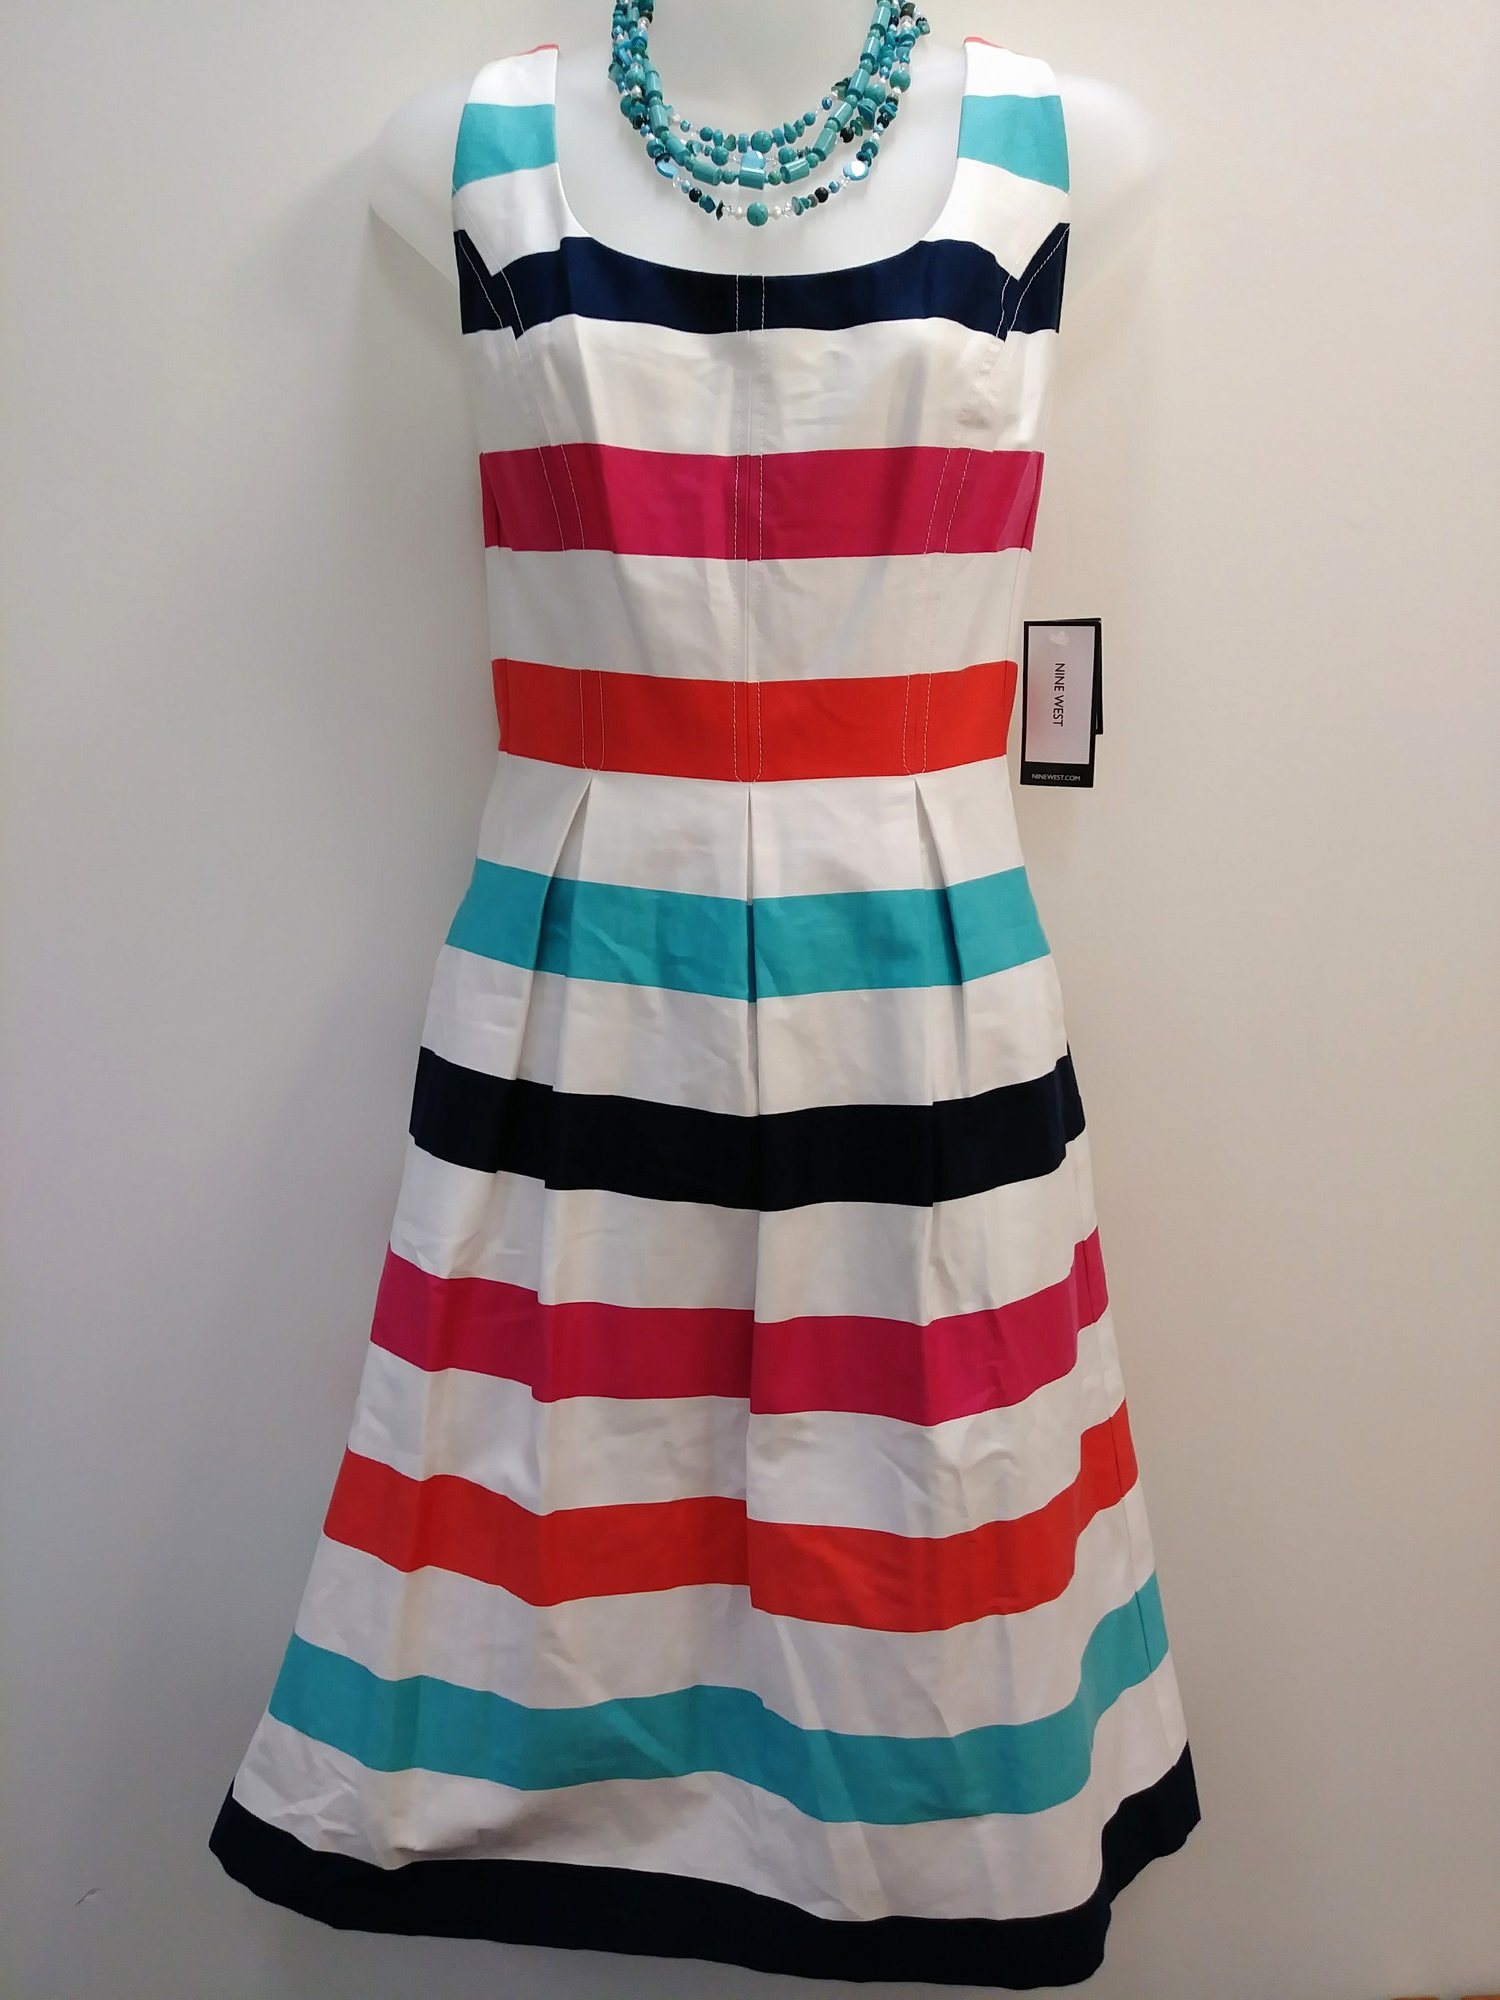 NEW Nine West<br /> Striped Dress with Pockets<br /> White, Teal, Navy, Pink, and Coral<br /> Size: 8